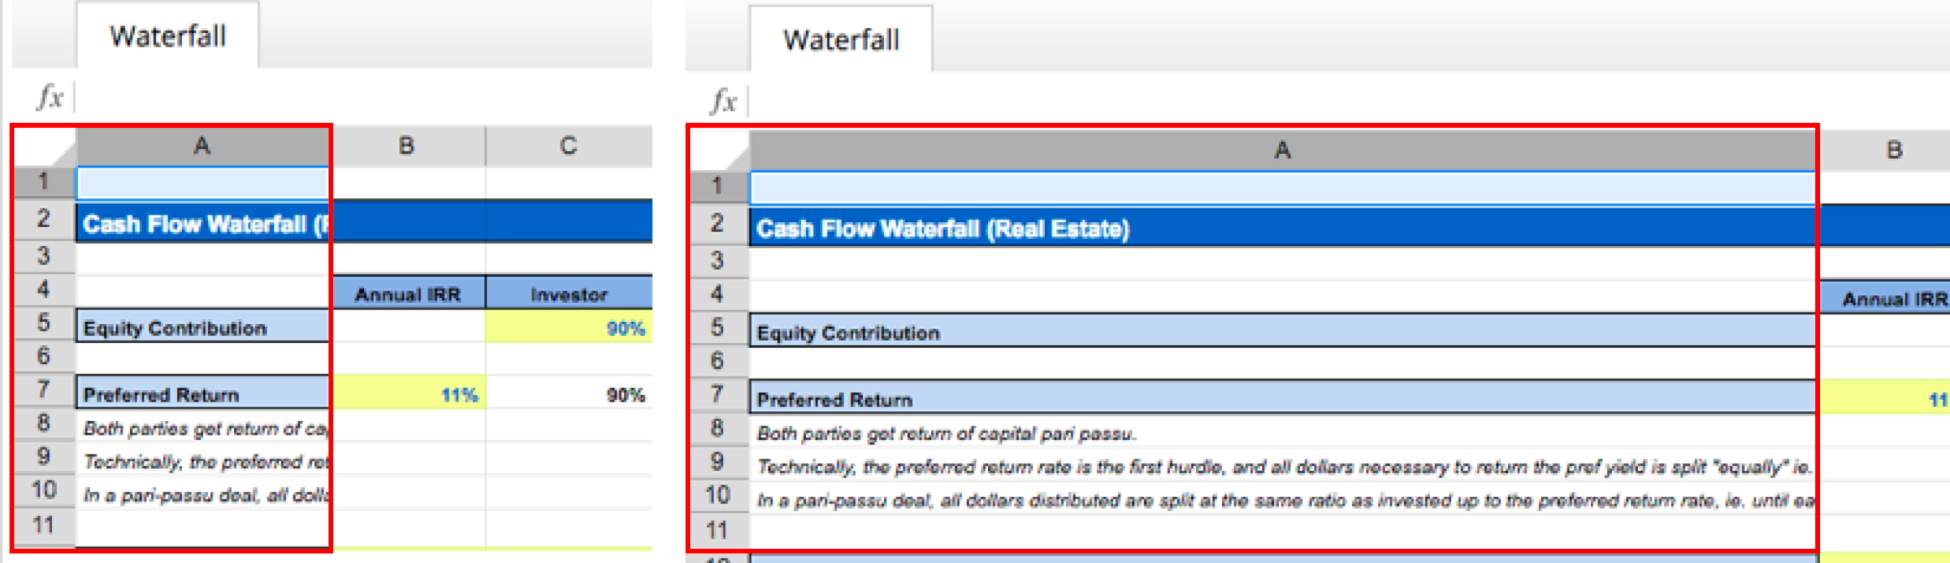 Speed Equity Spreadsheet Within Release For January 17, 2018: Improved Document Viewer, Now With